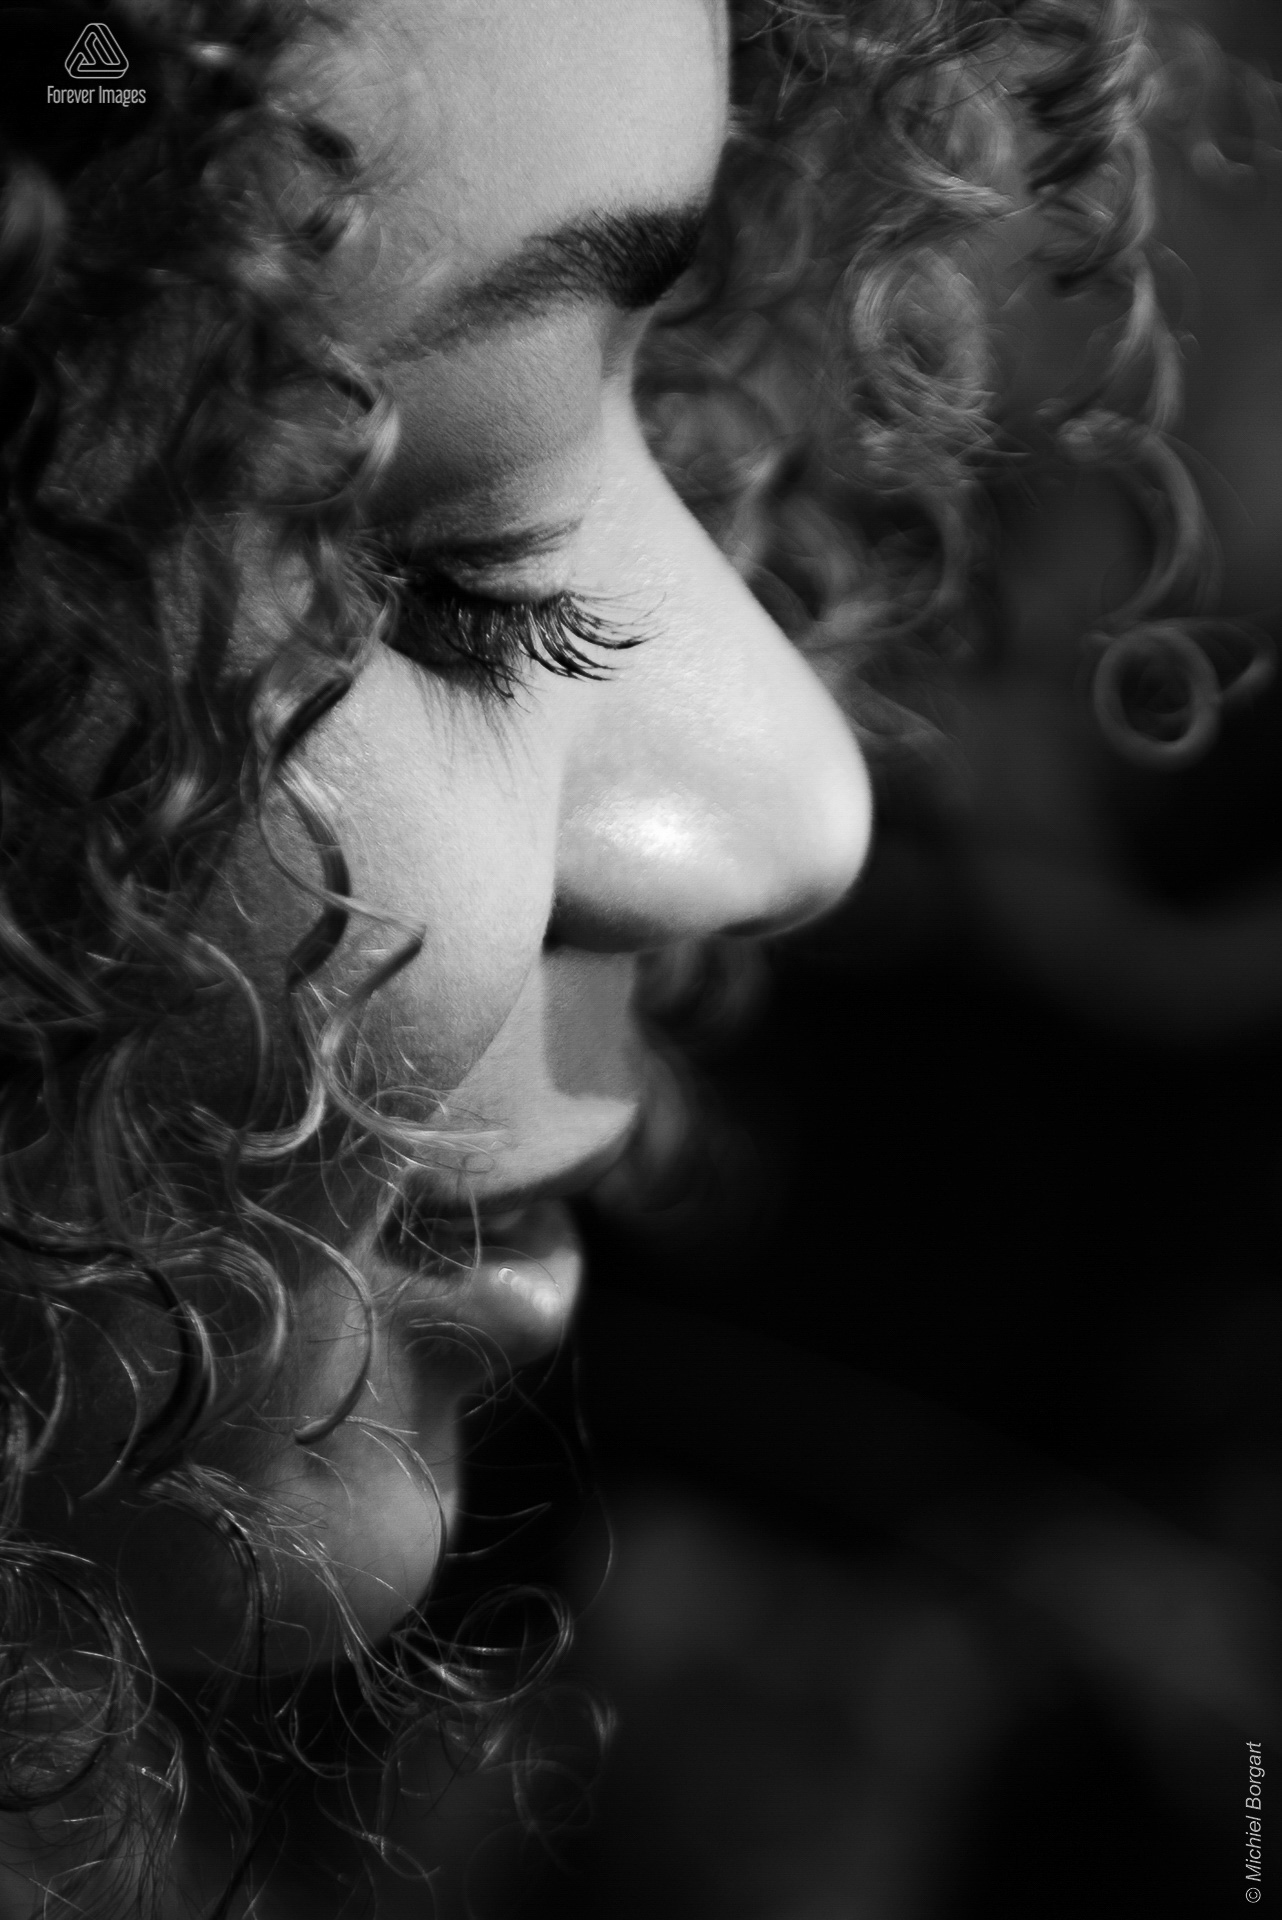 Portrait photo black and white close up young lady with beautiful curls | Samantha Reyes Amsterdam | Portrait Photographer Michiel Borgart - Forever Images.